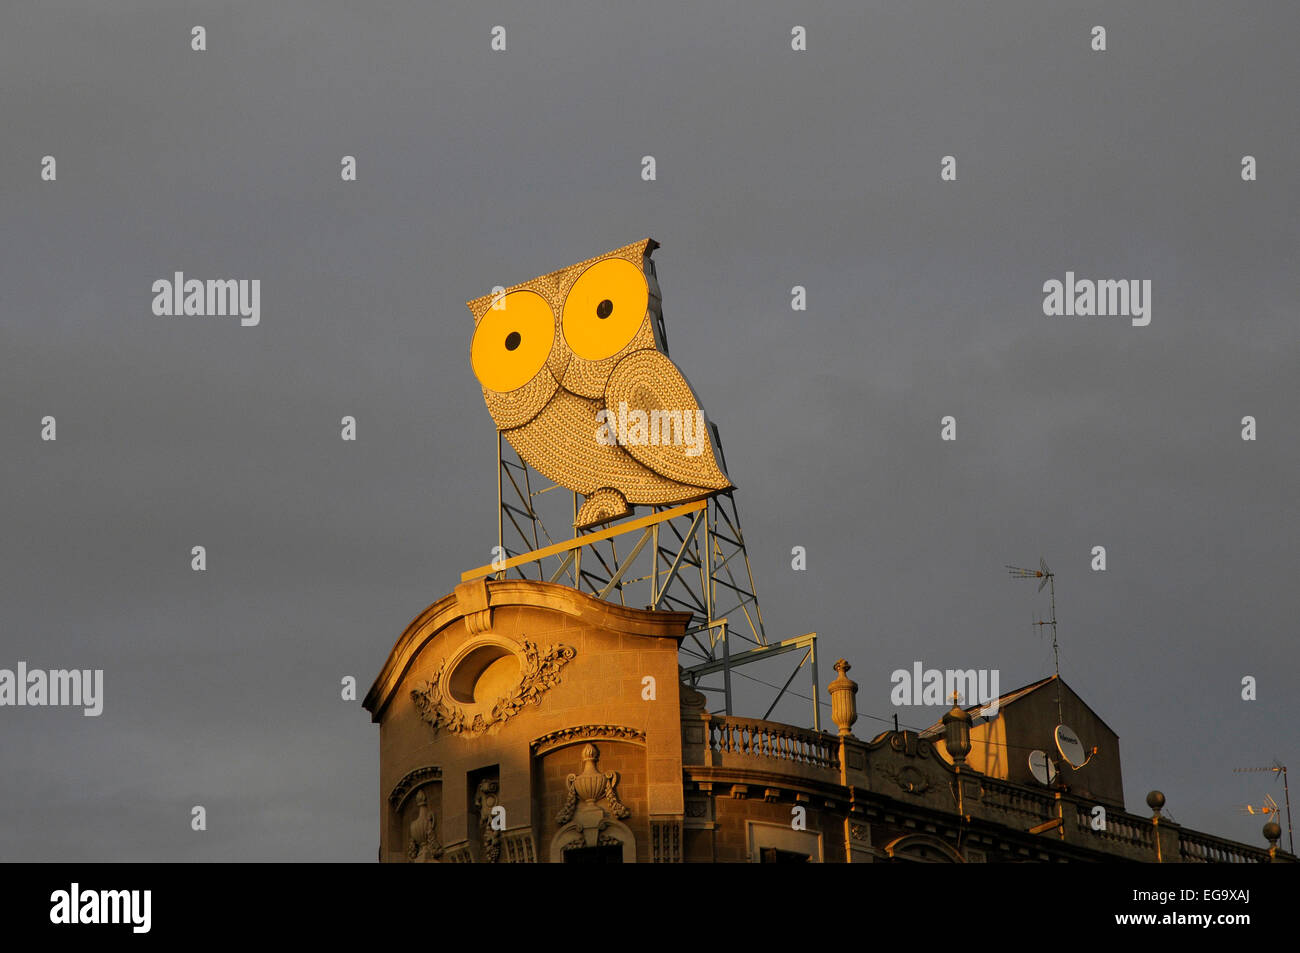 owl, neon sign, advertising, - Stock Image